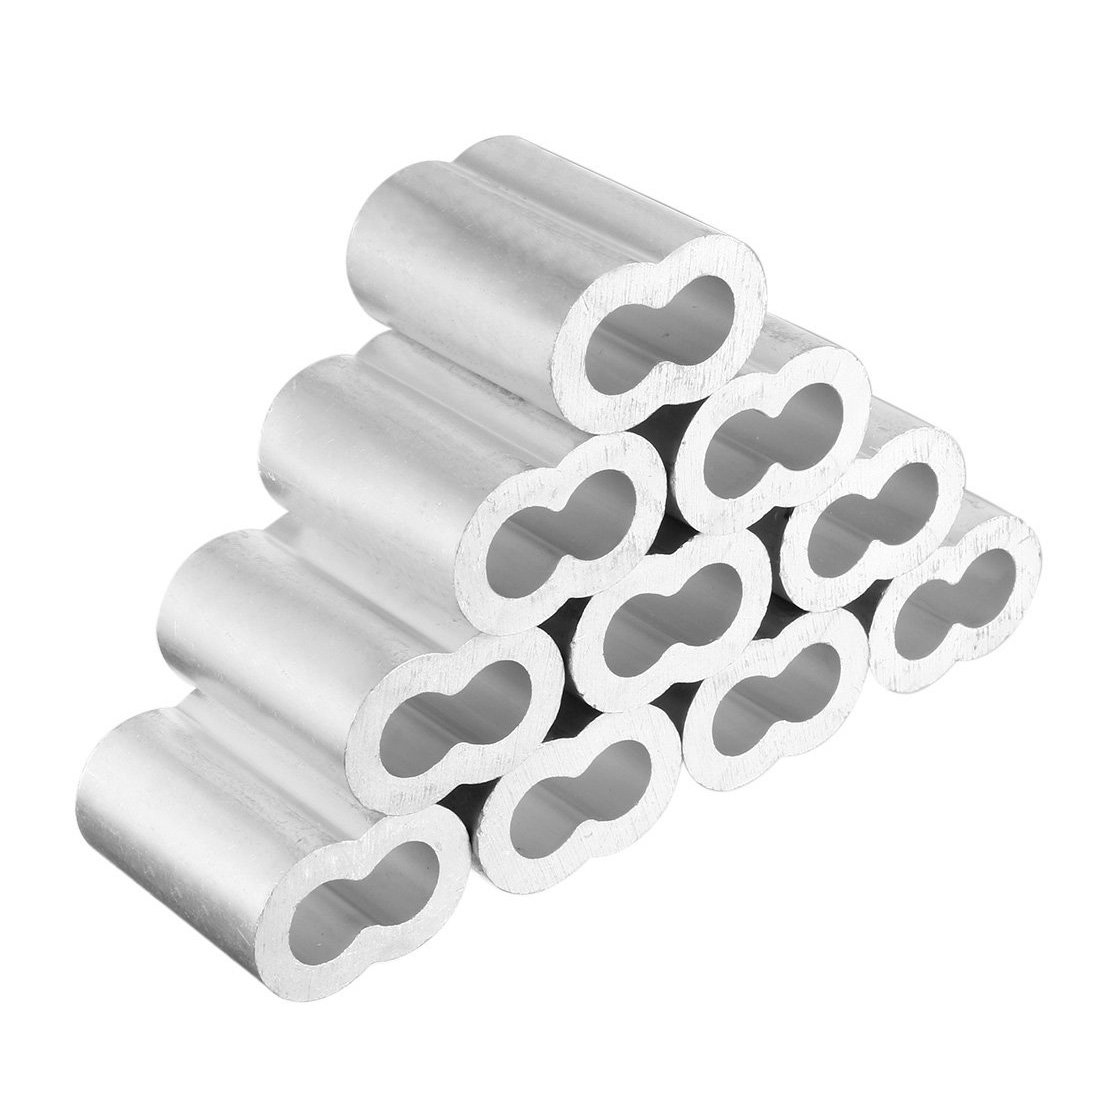 SODIAL 10pcs 1/2 inch (12mm) Diameter Wire Rope Aluminum Sleeves Clip Fittings Cable Crimps New